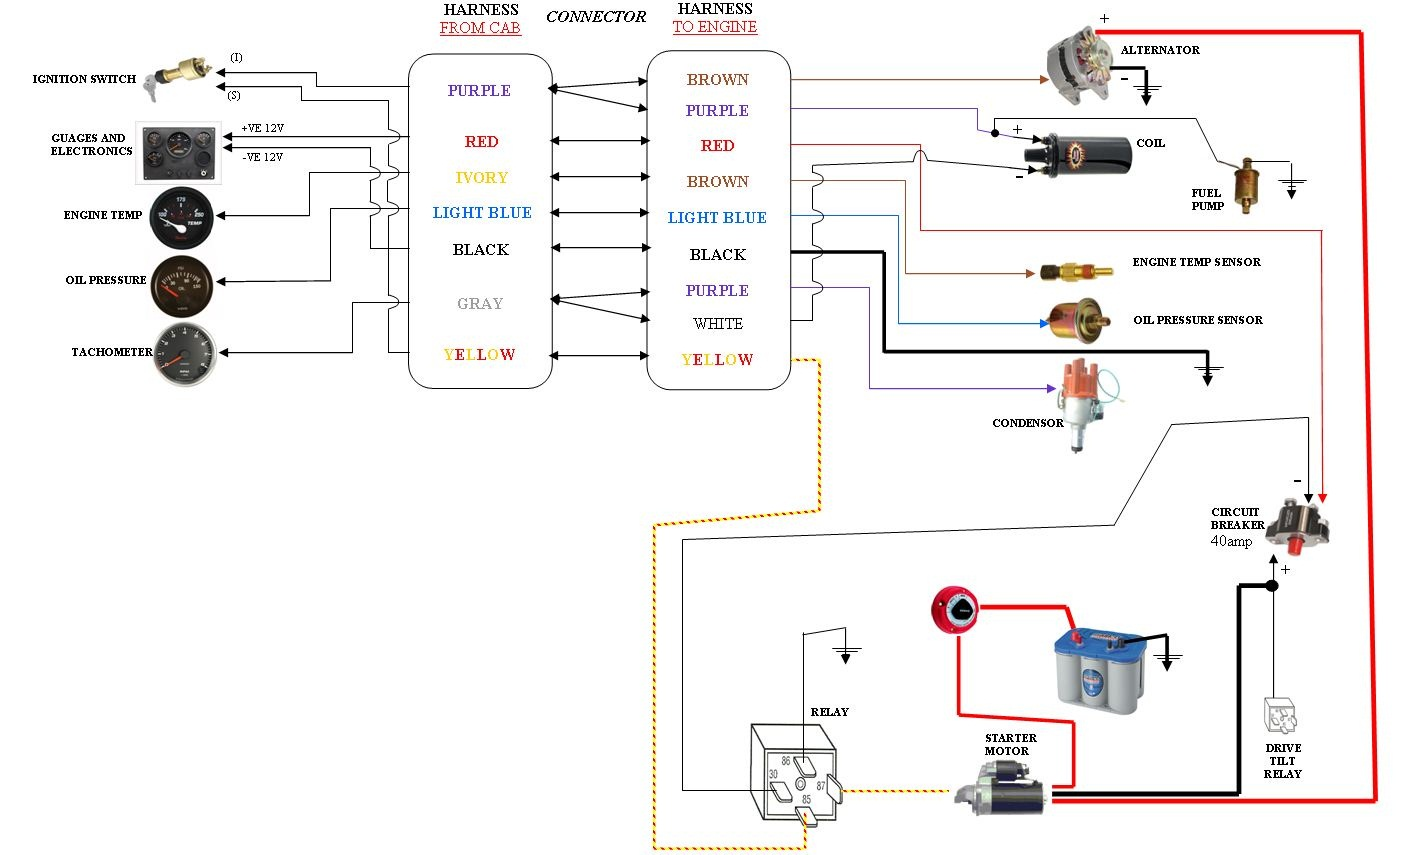 pertronix distributor wiring diagram with 5mk1n Volvo Penta Aq131a Automotive Fuel Pump on Issues With Hei And Other Engine Startup Questions Issues together with 5mk1n Volvo Penta Aq131a Automotive Fuel Pump furthermore The Basic Ins And Outs Of An Msd Ignition System likewise Showthread besides Showthread.